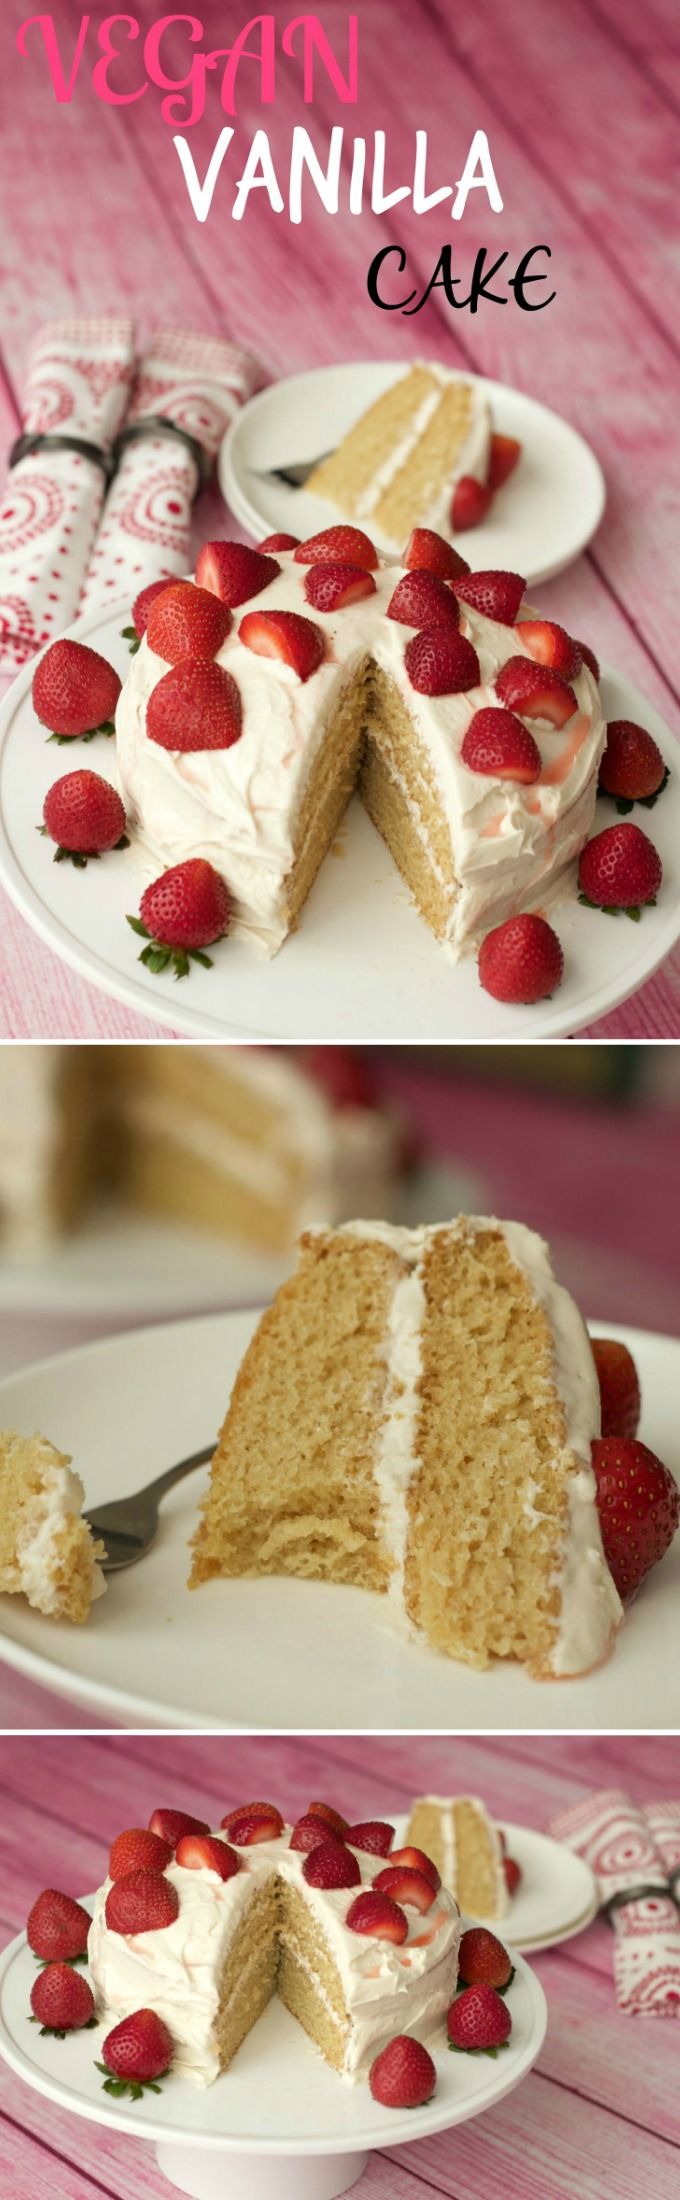 Vegan Vanilla Cake - Light, fluffy and dreamy! Vegan | Vegan Cakes | Vegan Desserts | Vegan Food | Vegan Recipes